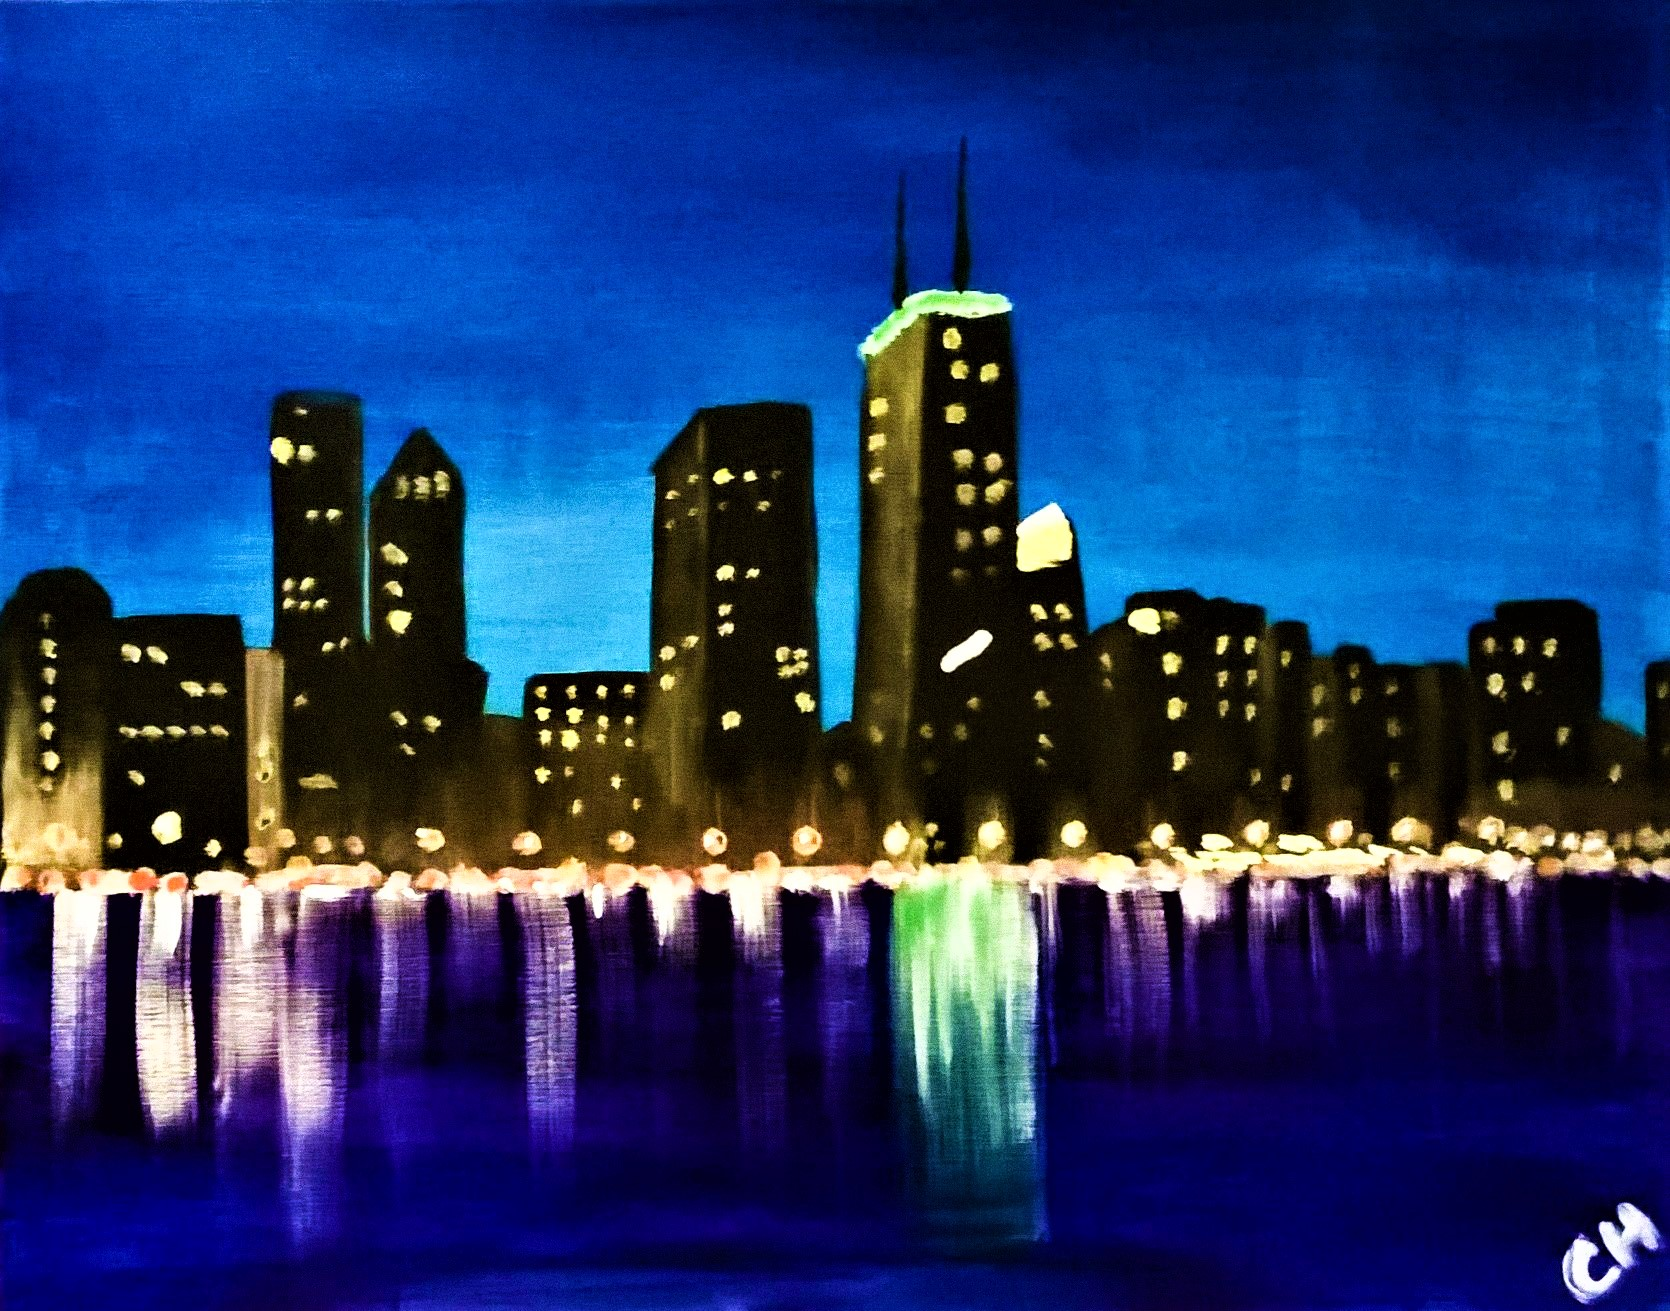 A38 Chitown Rising - Sip and Paint Parties in Bartlett, IL